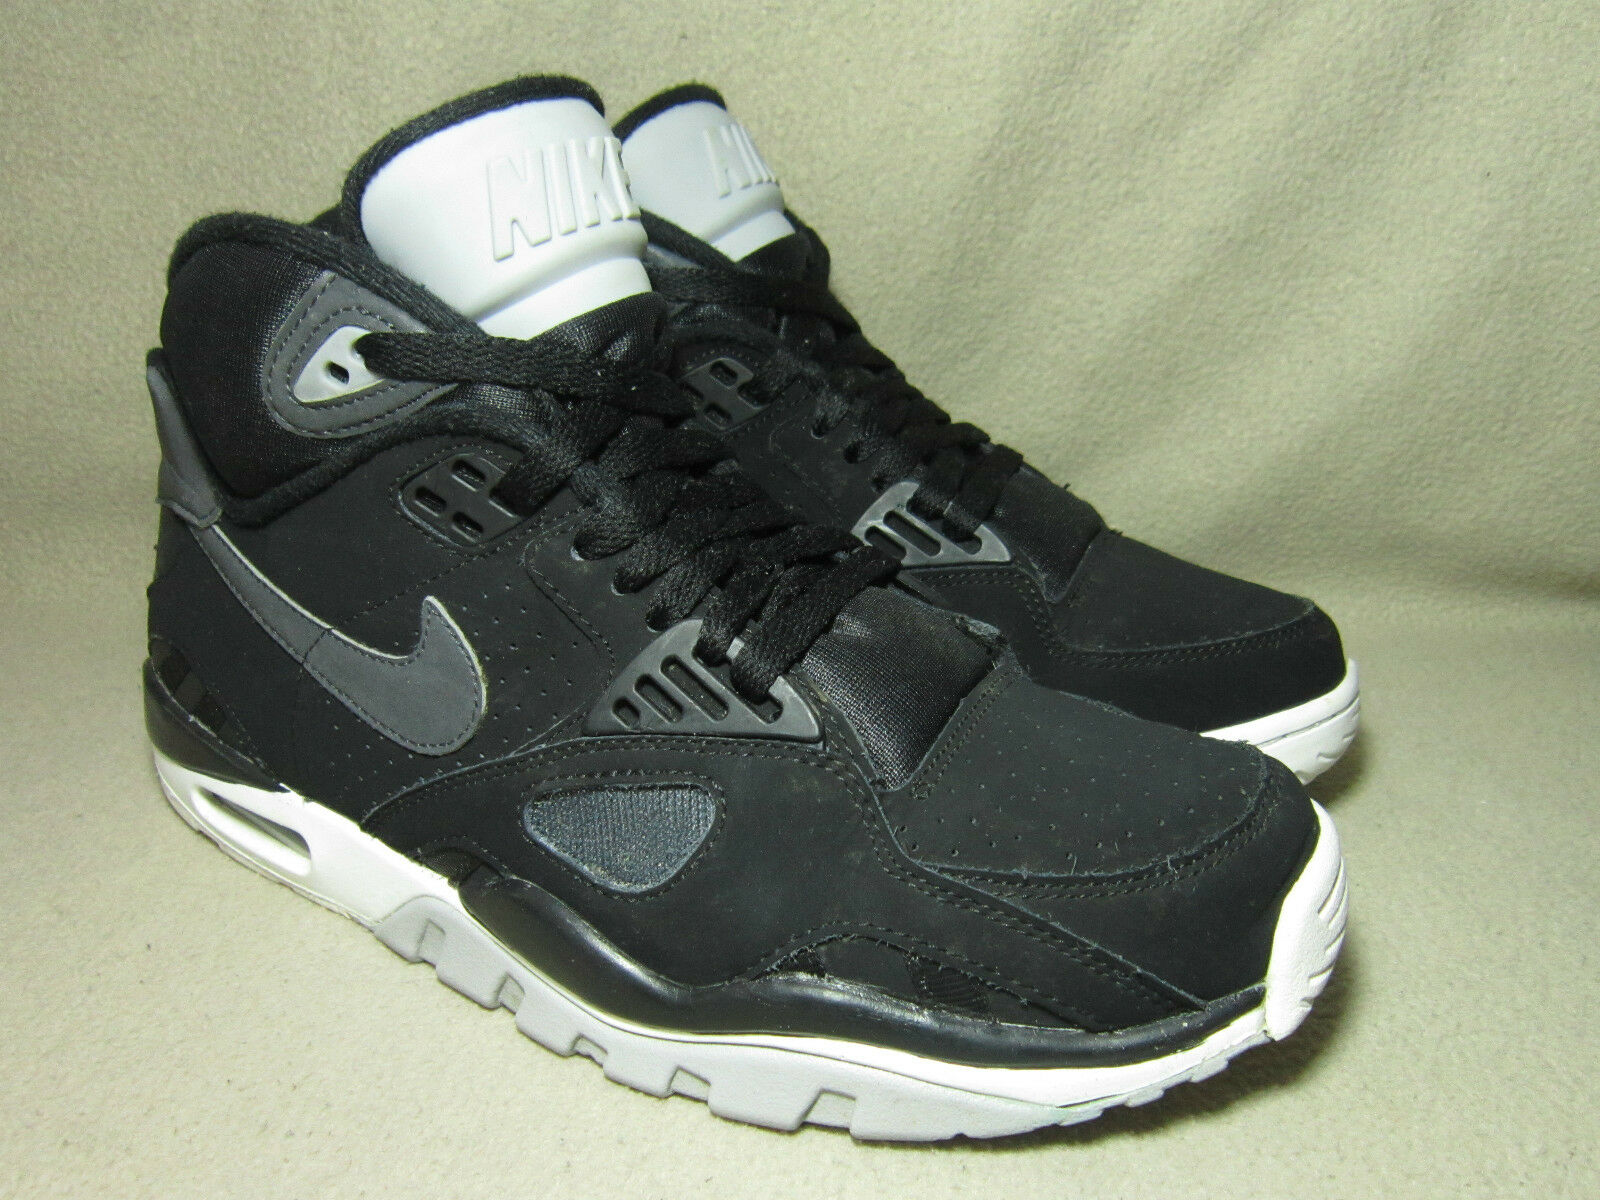 Nike Air Trainer SC II QUICKSTRIKE Uomo Uomo Uomo NERO/Anthr in Pelle Tg /EU 40 654589